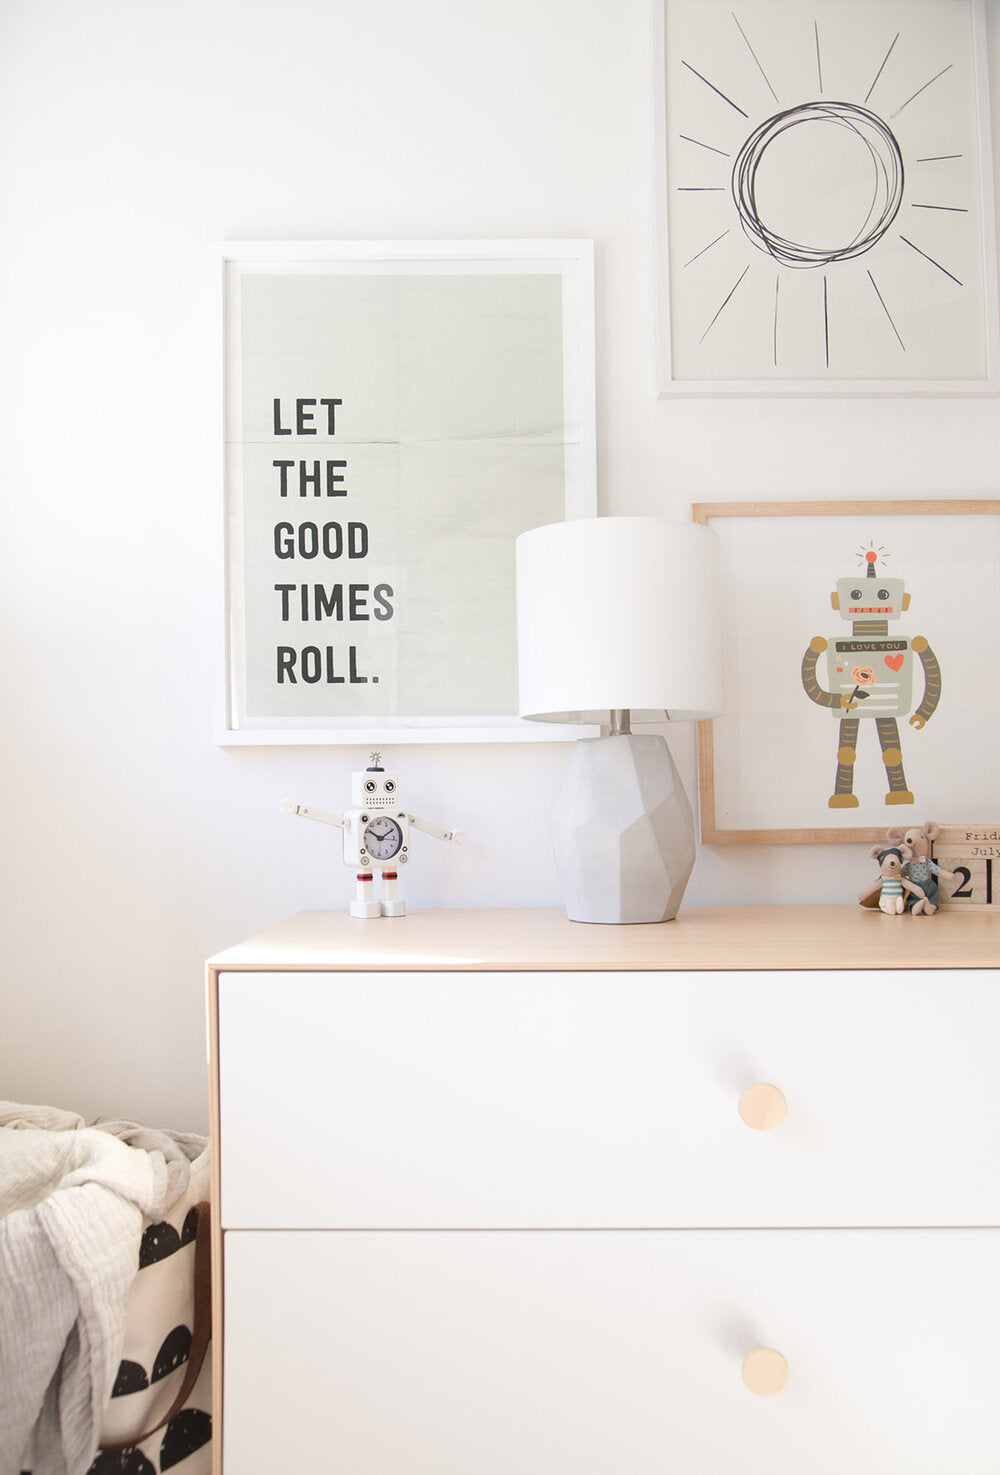 Boys room gallery wall with robots and minimal style art